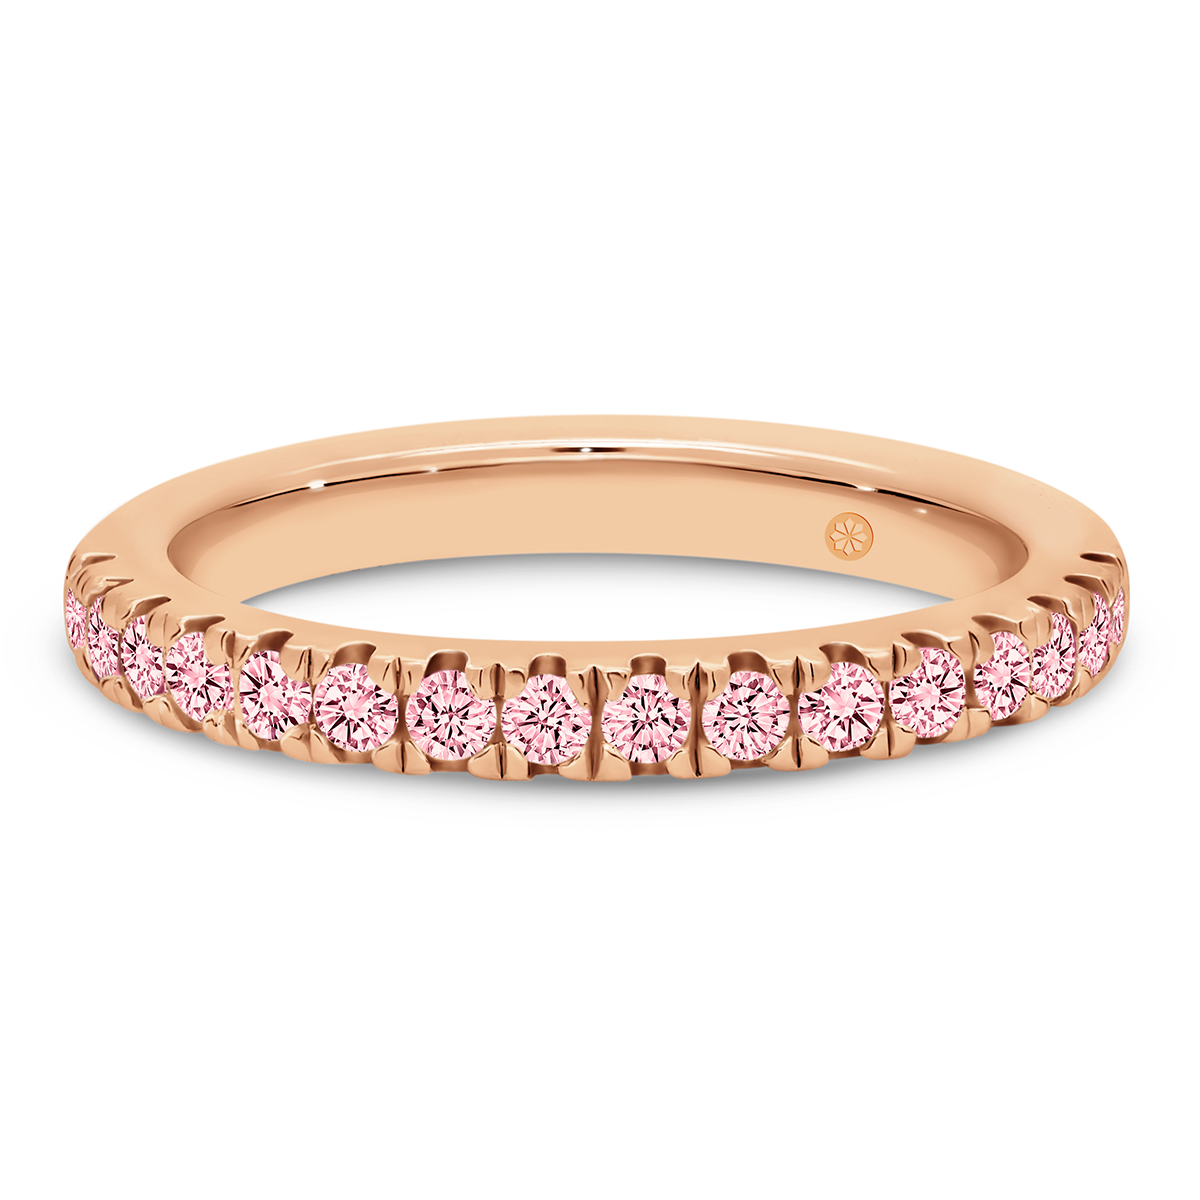 Rosanna 1.7 lab-grown pink diamond ring